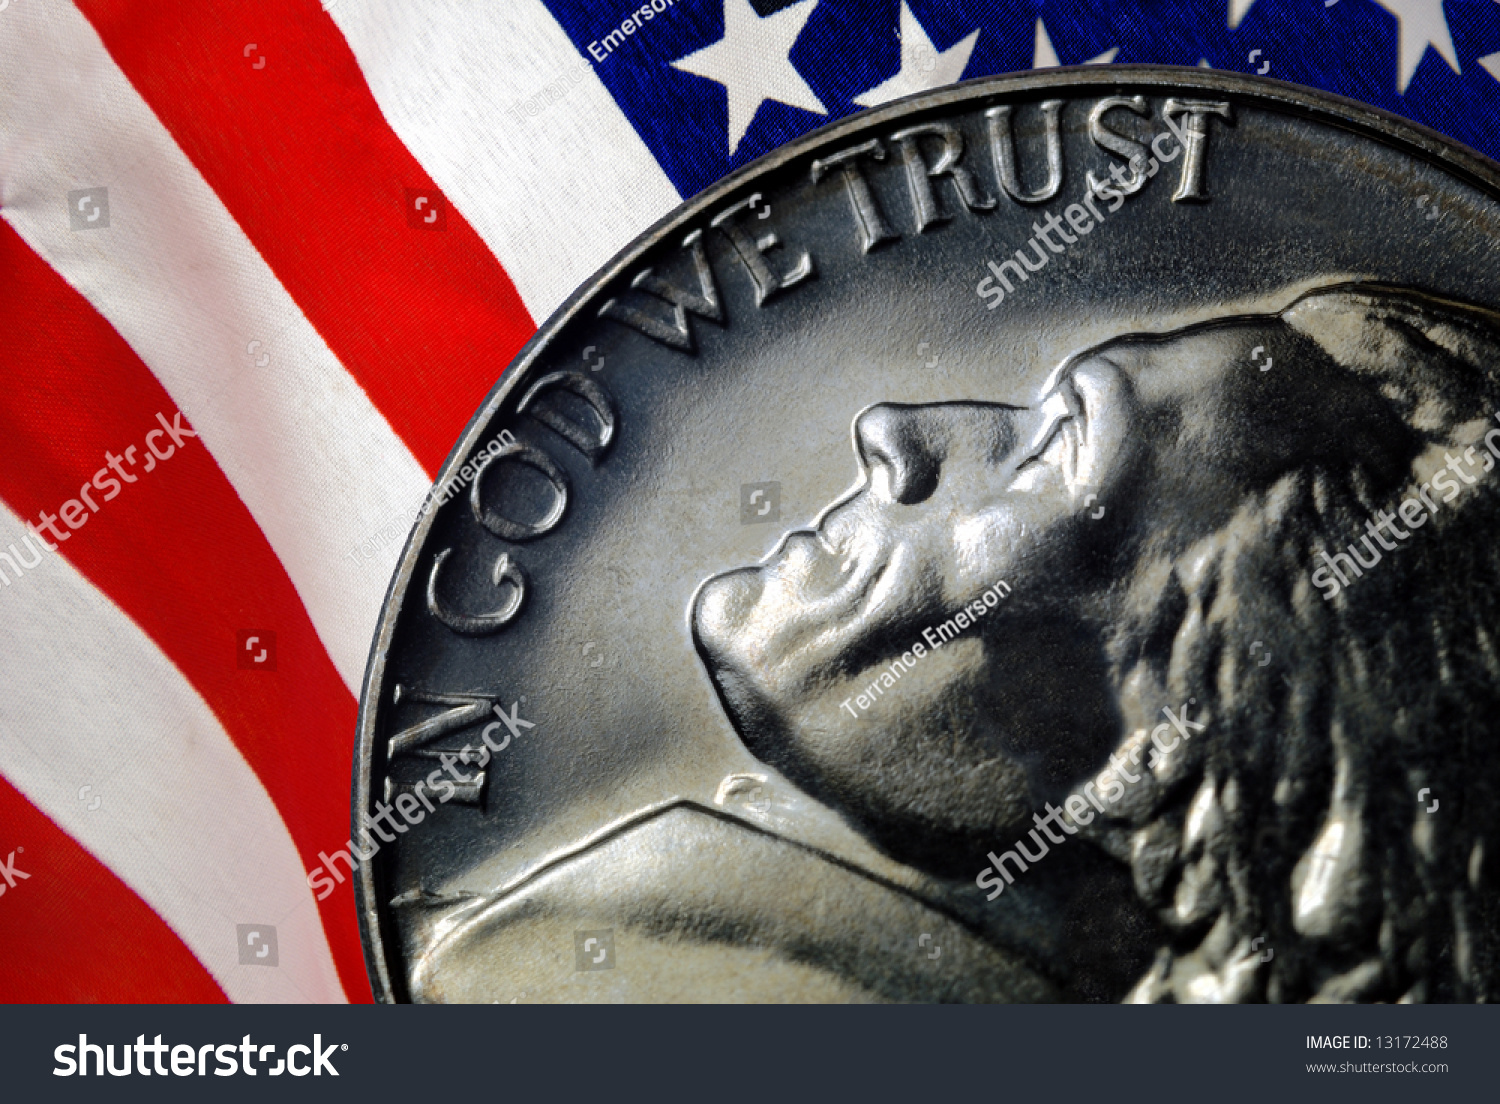 Image result for in god we trust american flag